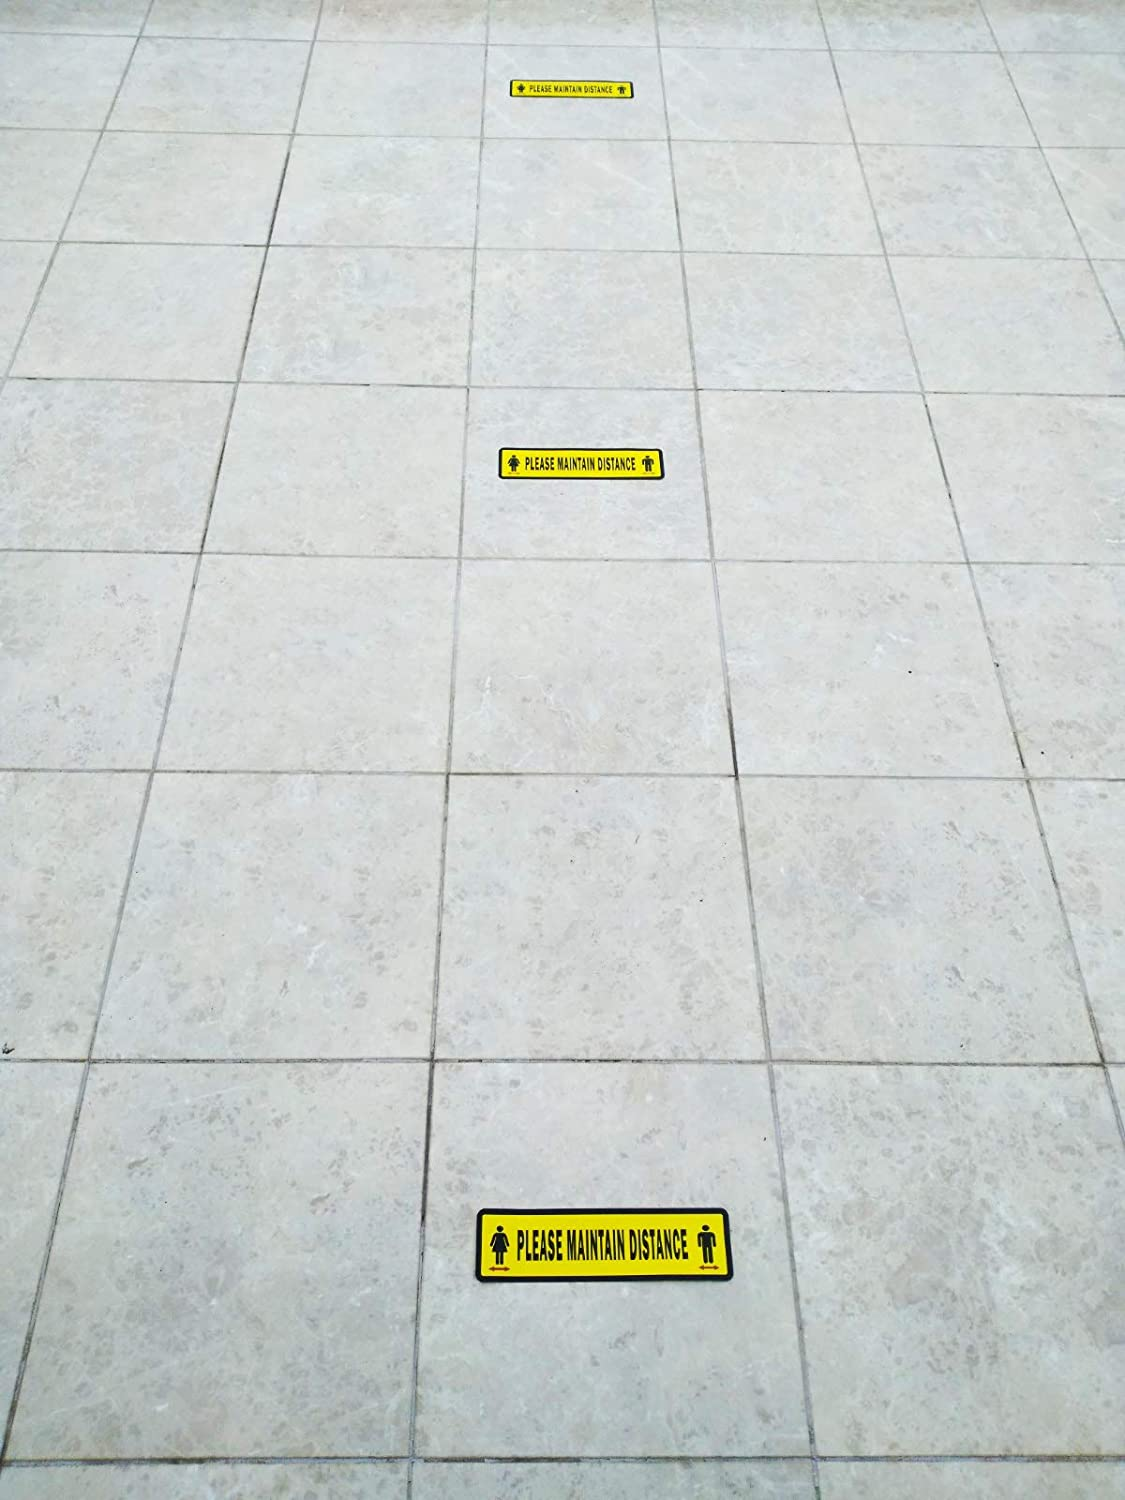 Floor Graphic Stickers for Business Please Maintain Distance Retailers Groceries 6 Decals Per Pack Pharmacy Social Distancing Sign Decals Hospitals 3 x 12 Eye-Catching Coronavirus Sticker